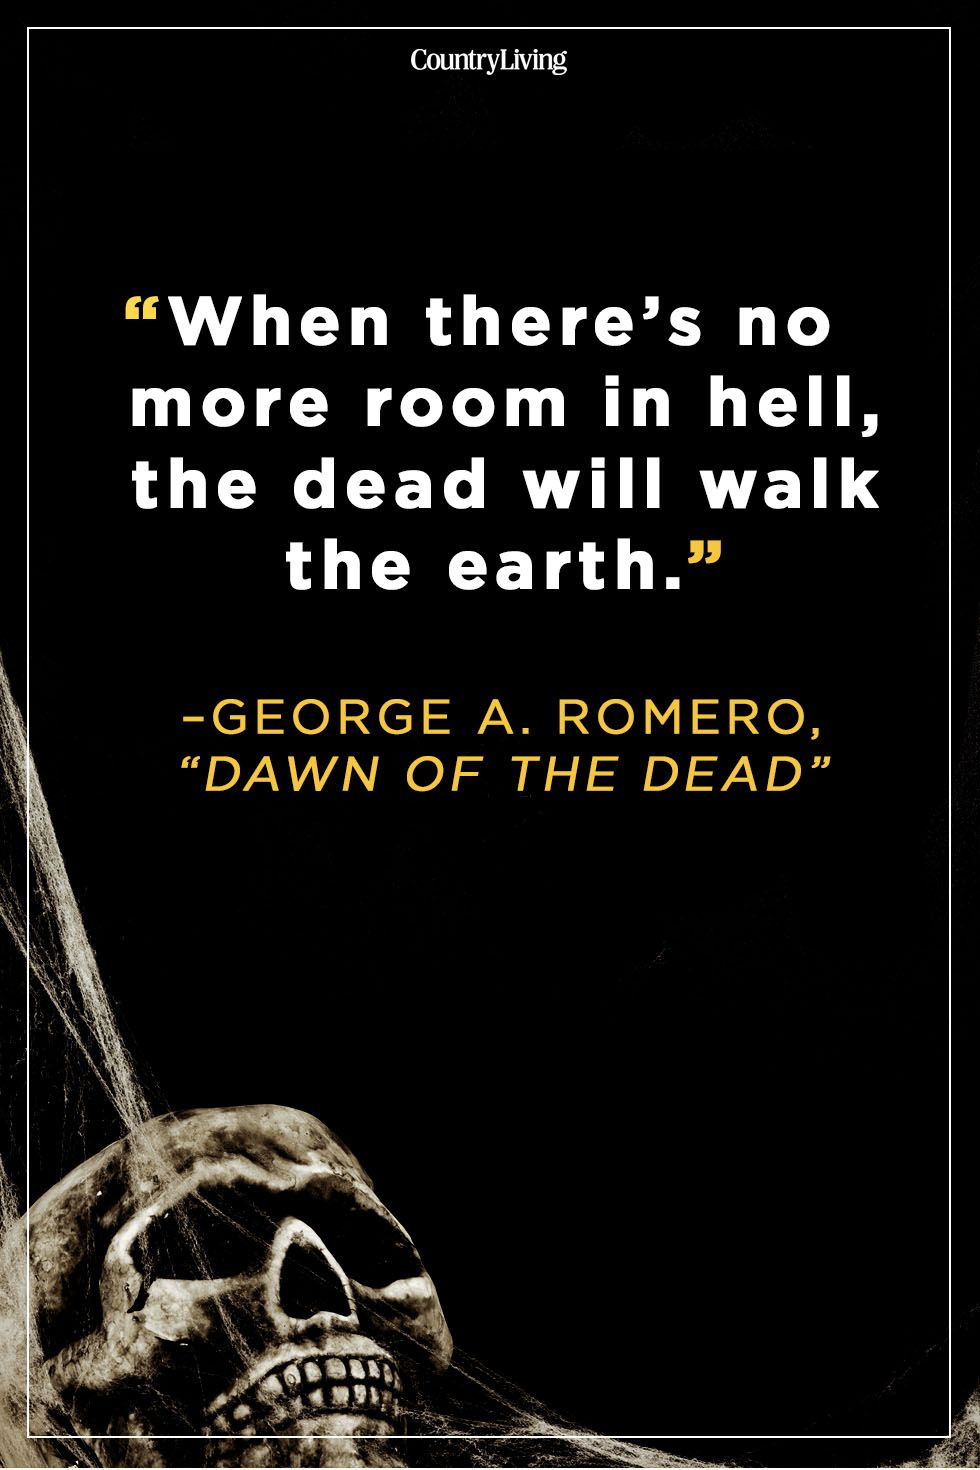 Creepy Quotes 30 Scary Quotes   Creepy Quotes & Sayings About Fear & Eerie Things Creepy Quotes